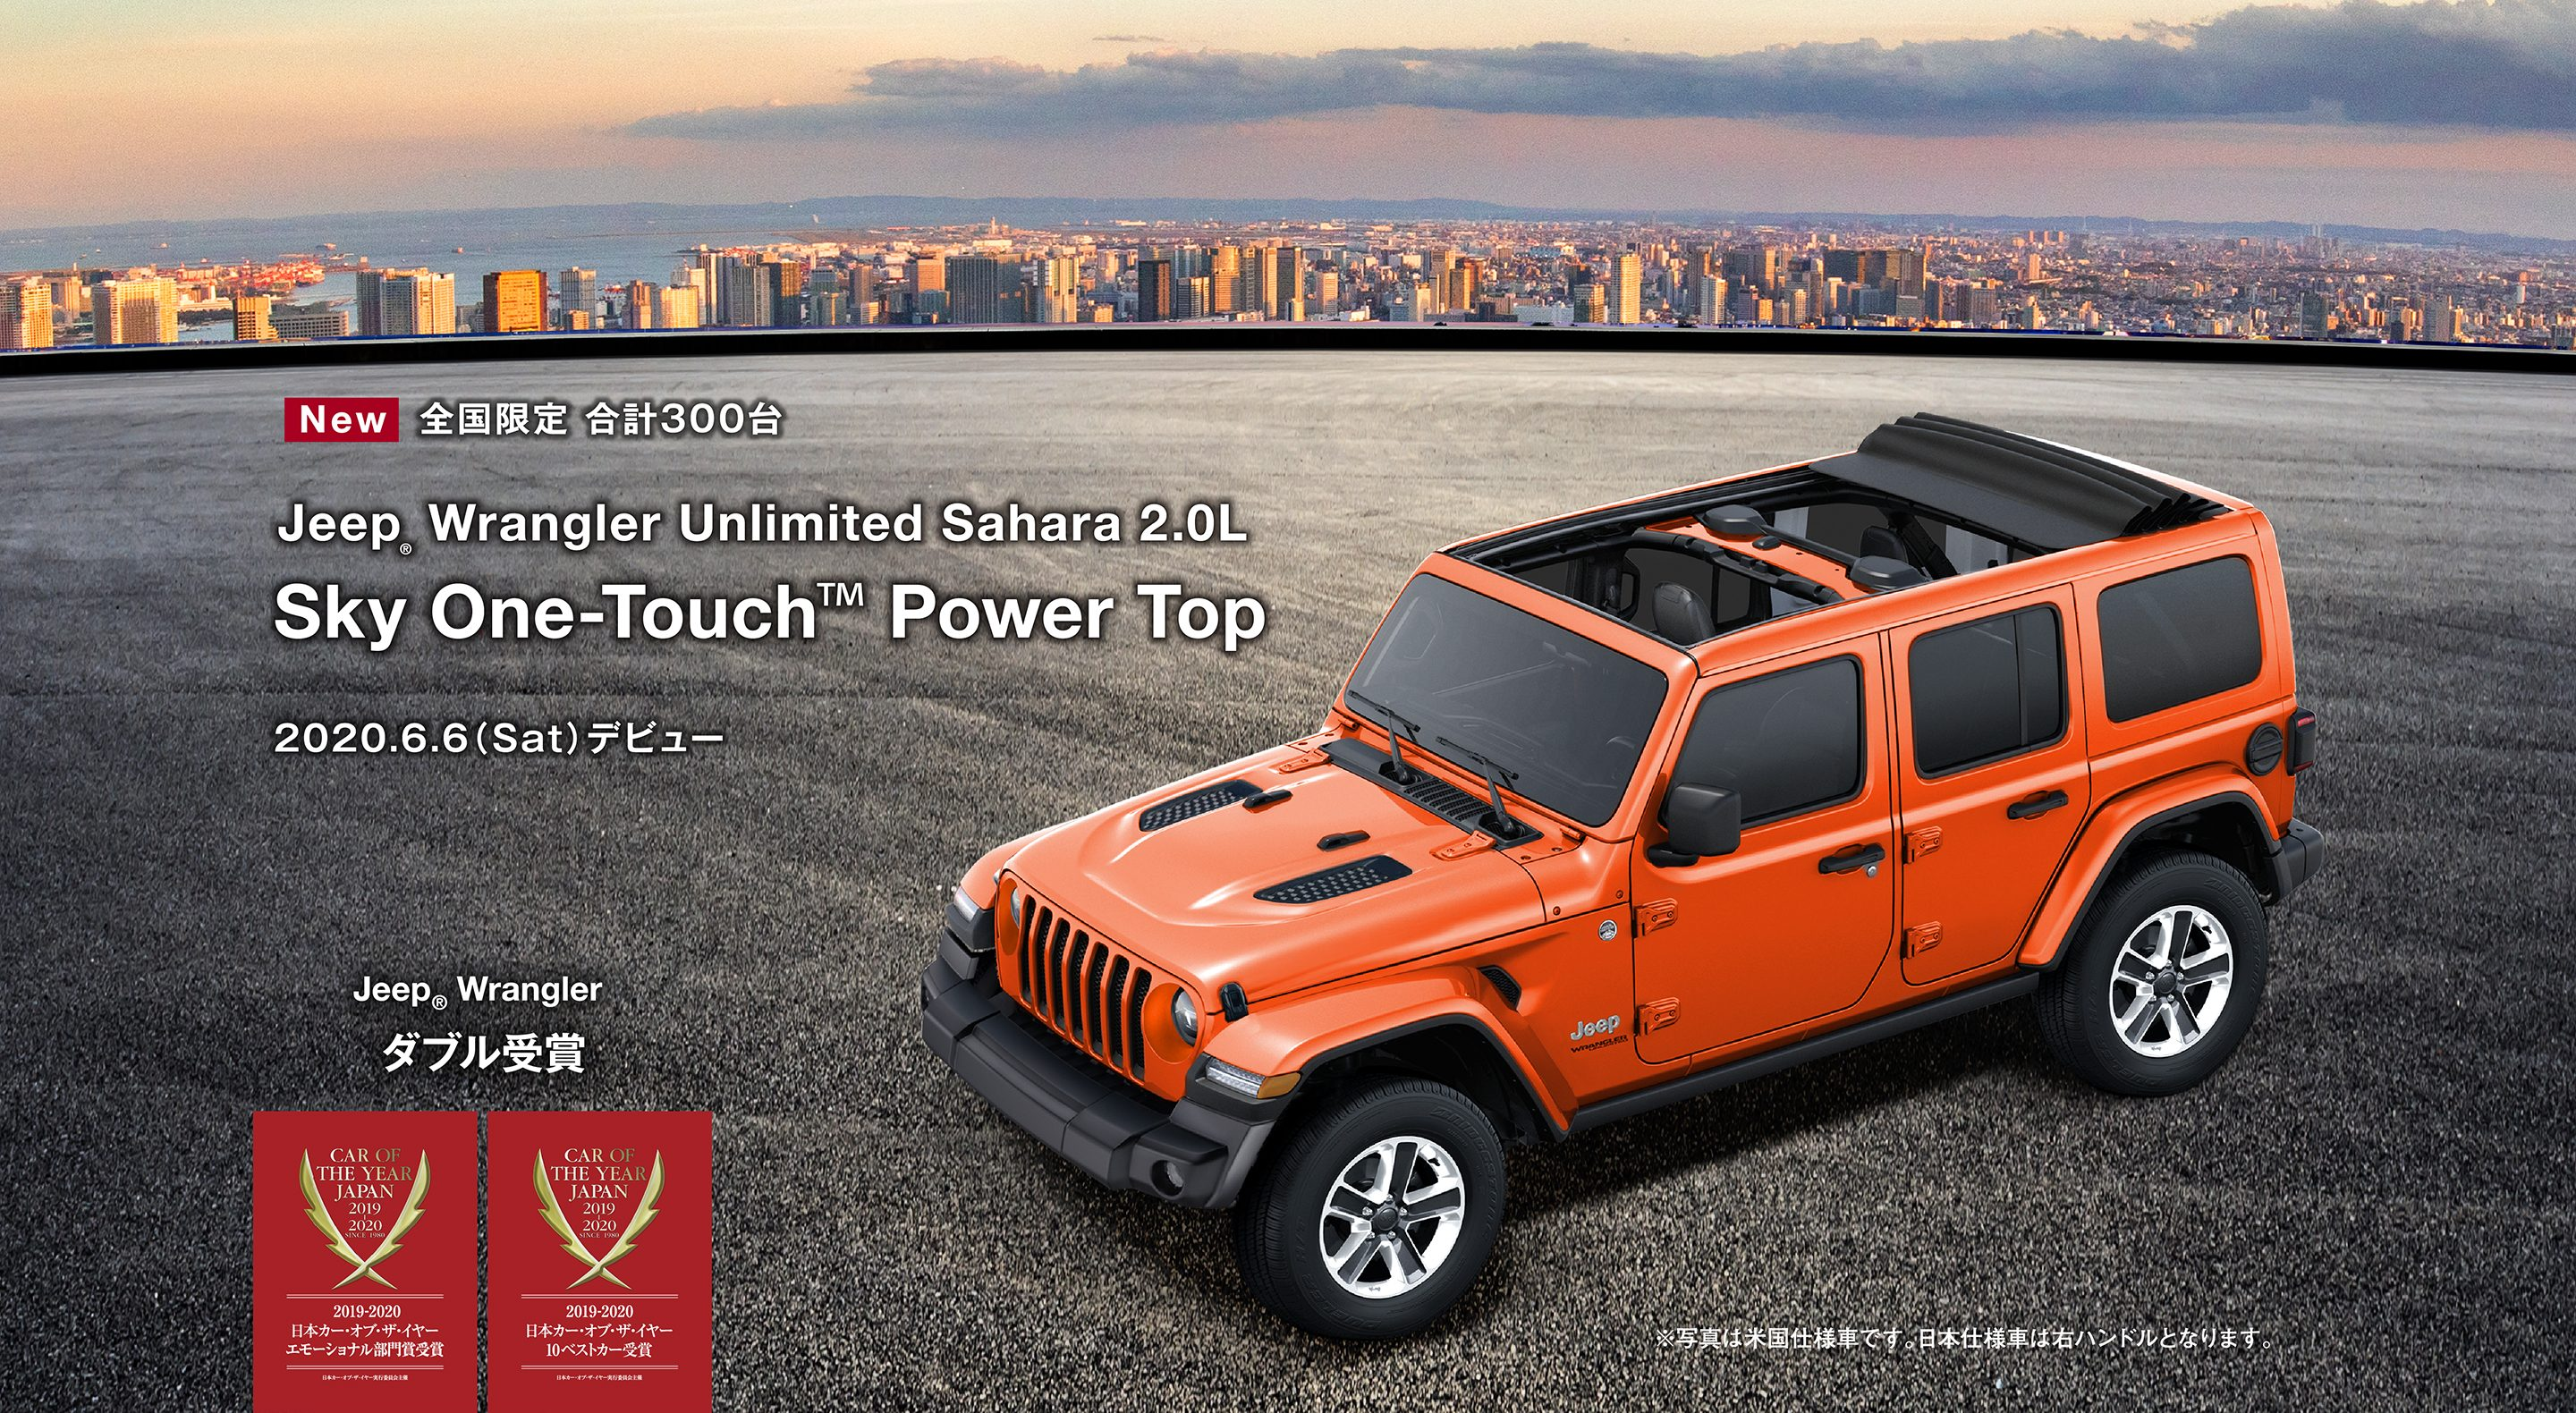 Jeep広島西 Wrangler Unlimited Sahara2.0L Sky One-Touch Power Top  2020.6.6(Sat) デビュー